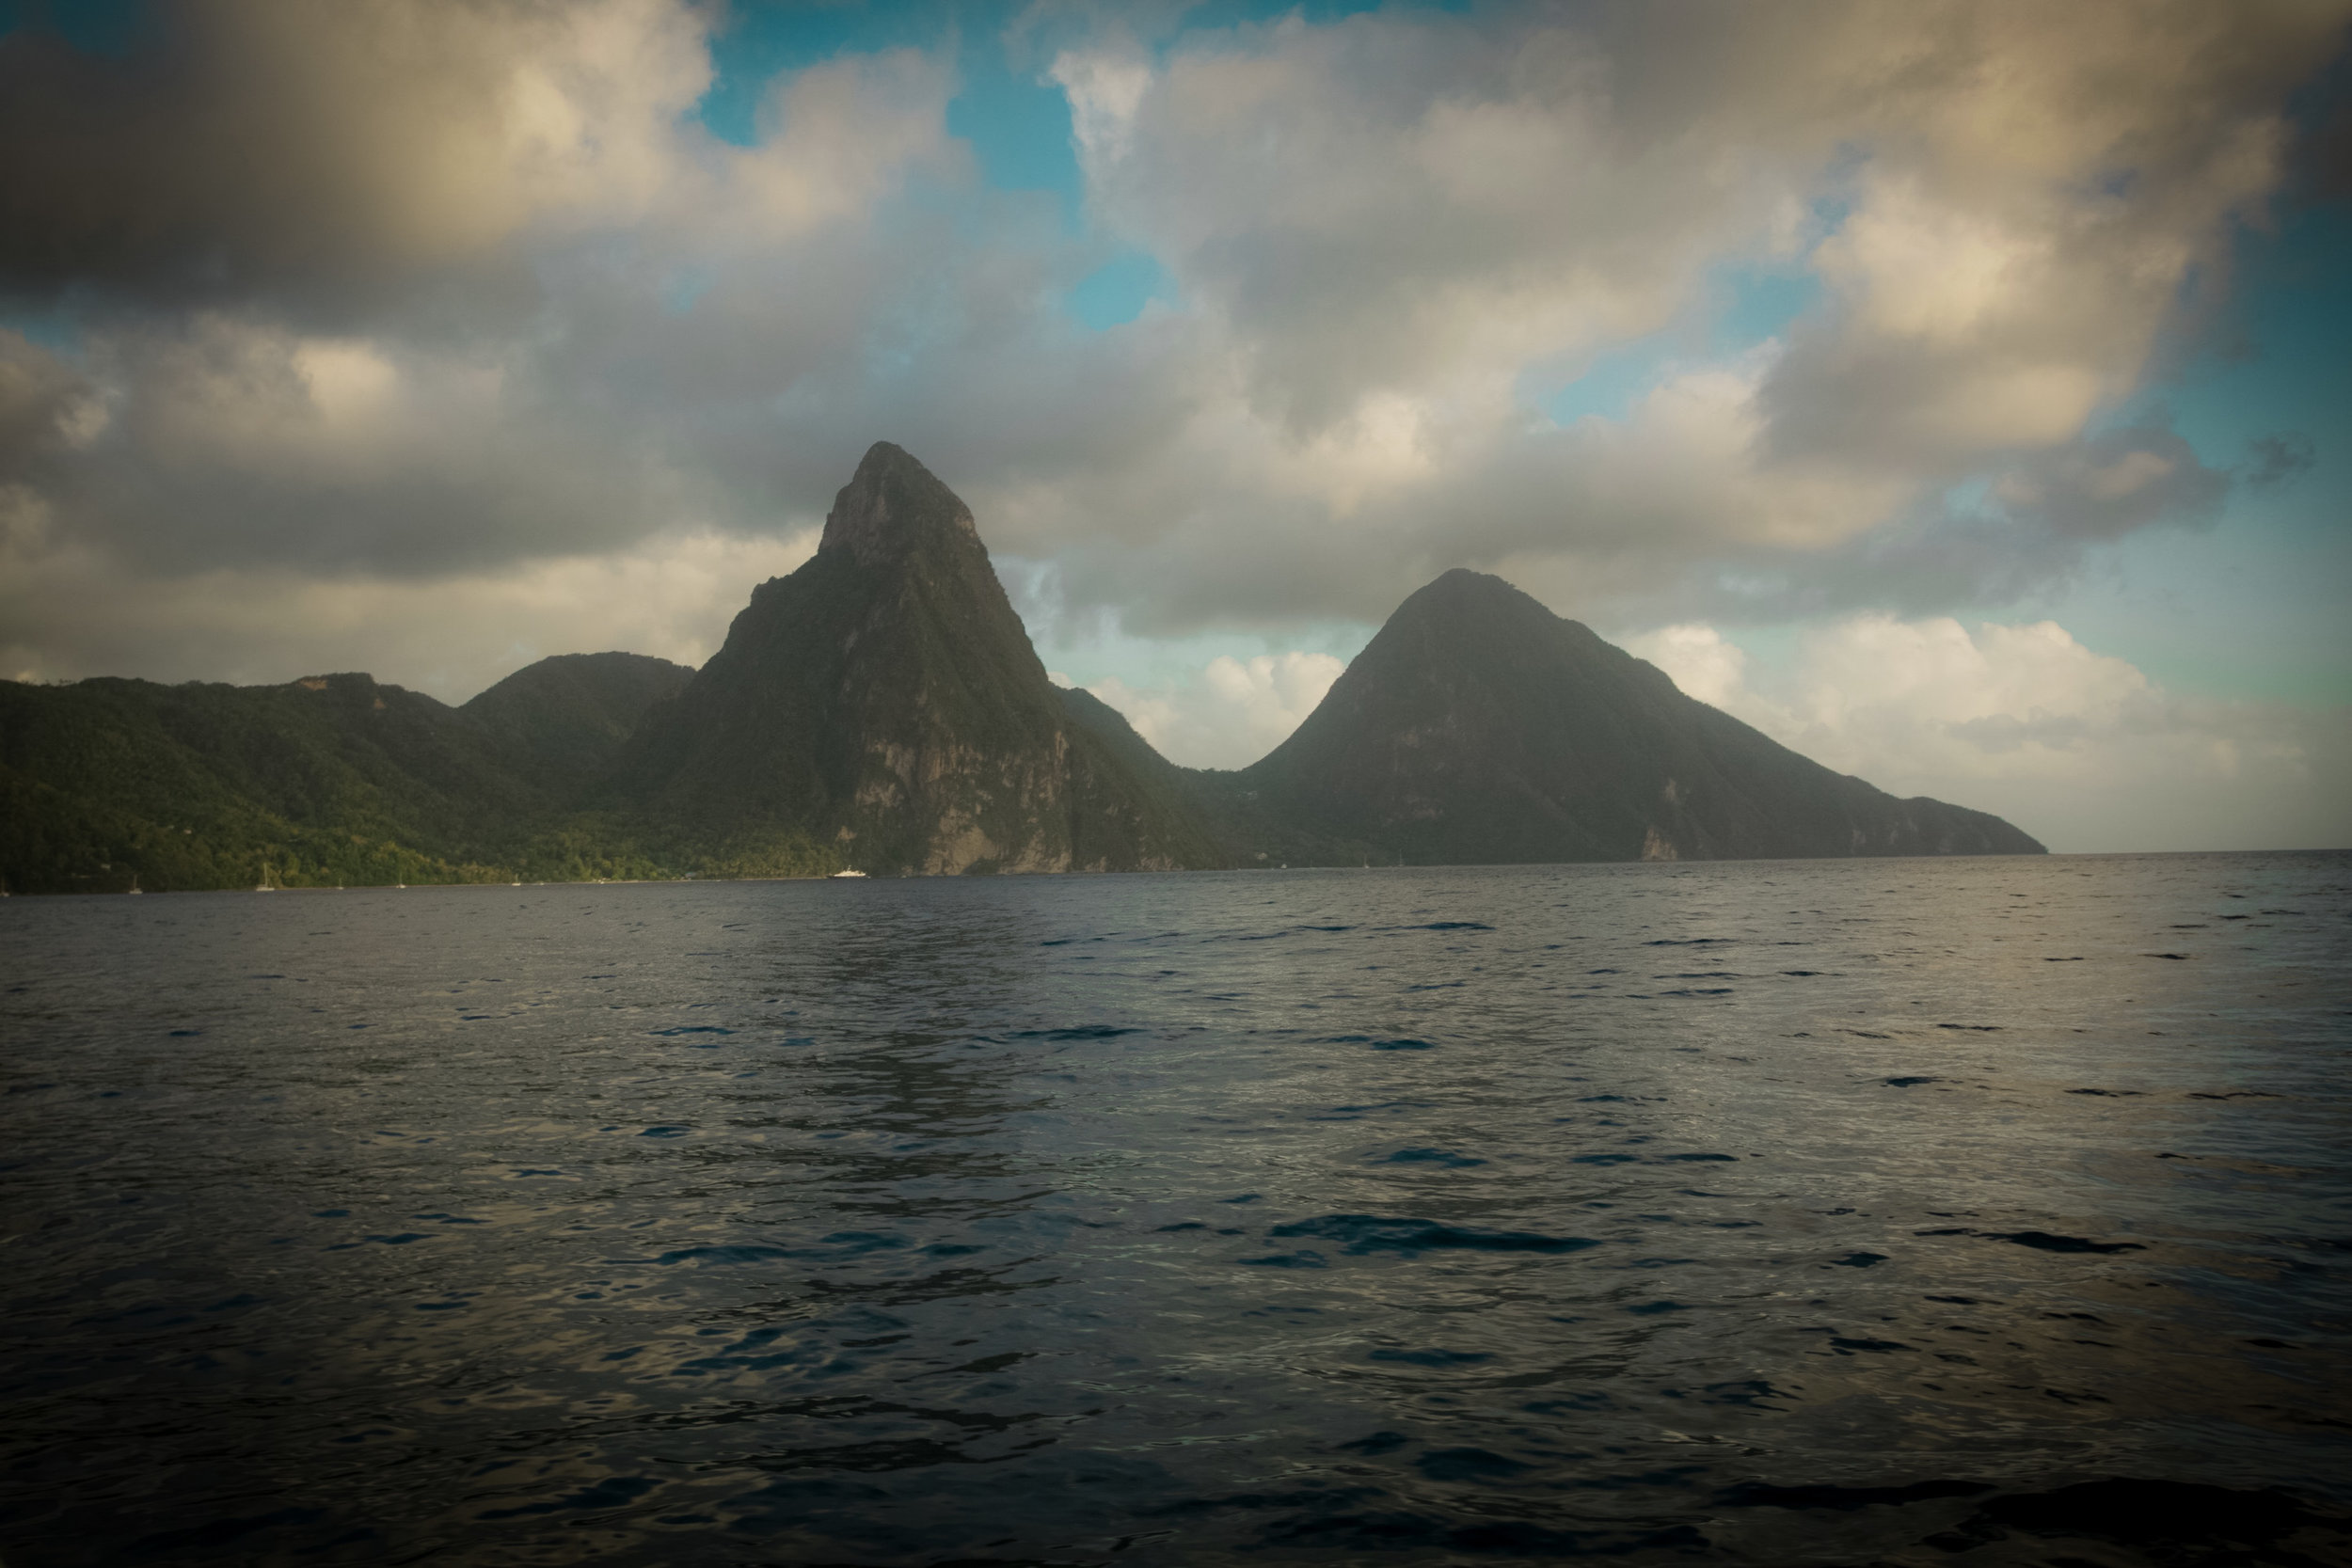 The famous grandeur Pitons on the island of St. Lucia , The Gros Piton is 771 m high, and the Petit Piton is 743 m high and always intoxicating to look at. Photography Courtesy of The Aisle Photography